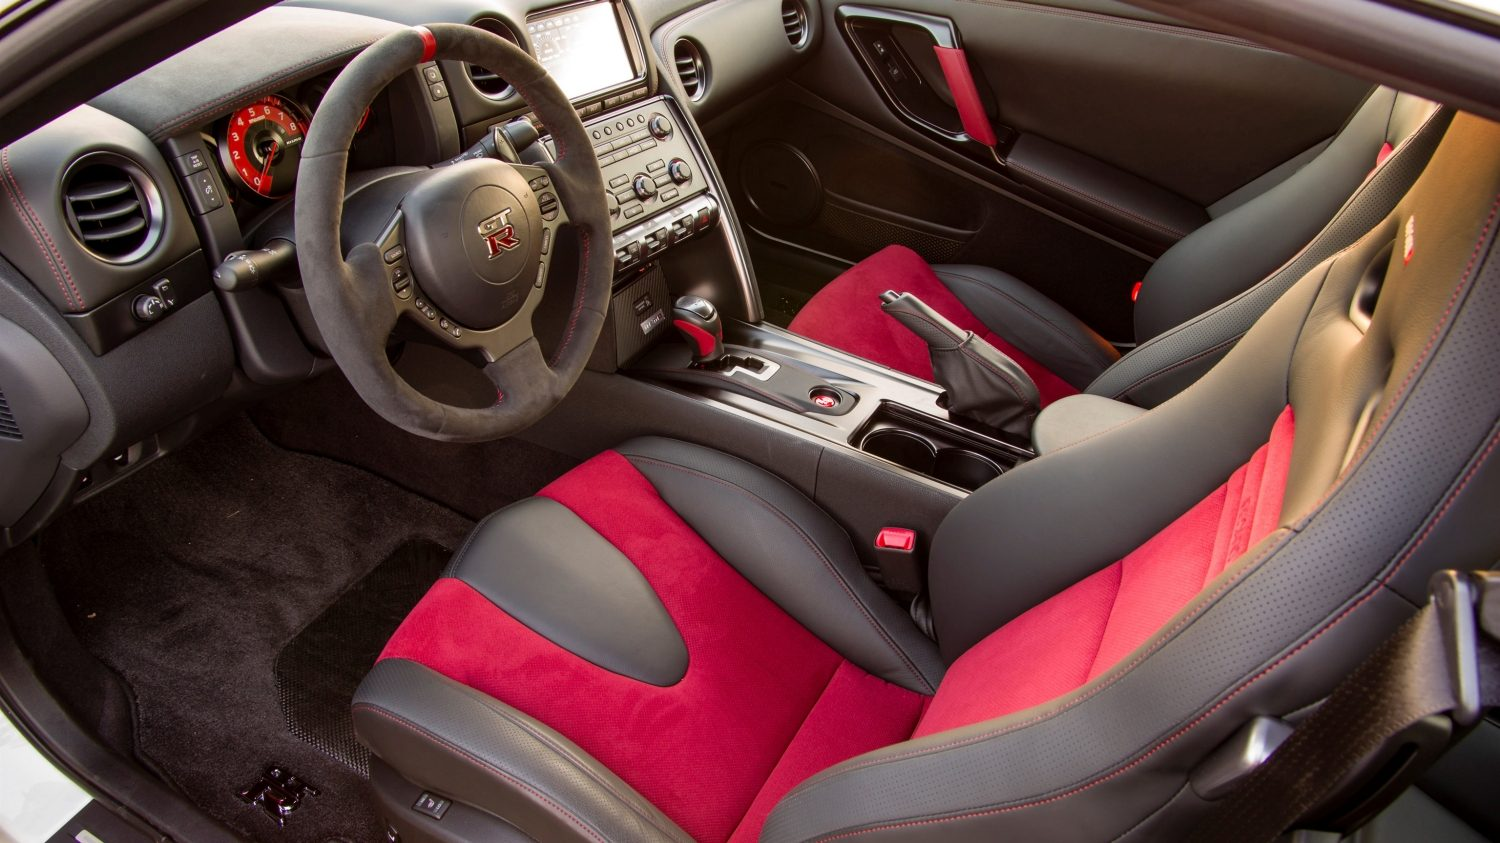 Nissan GT-R NISMO - Side interior view - Recaro seats